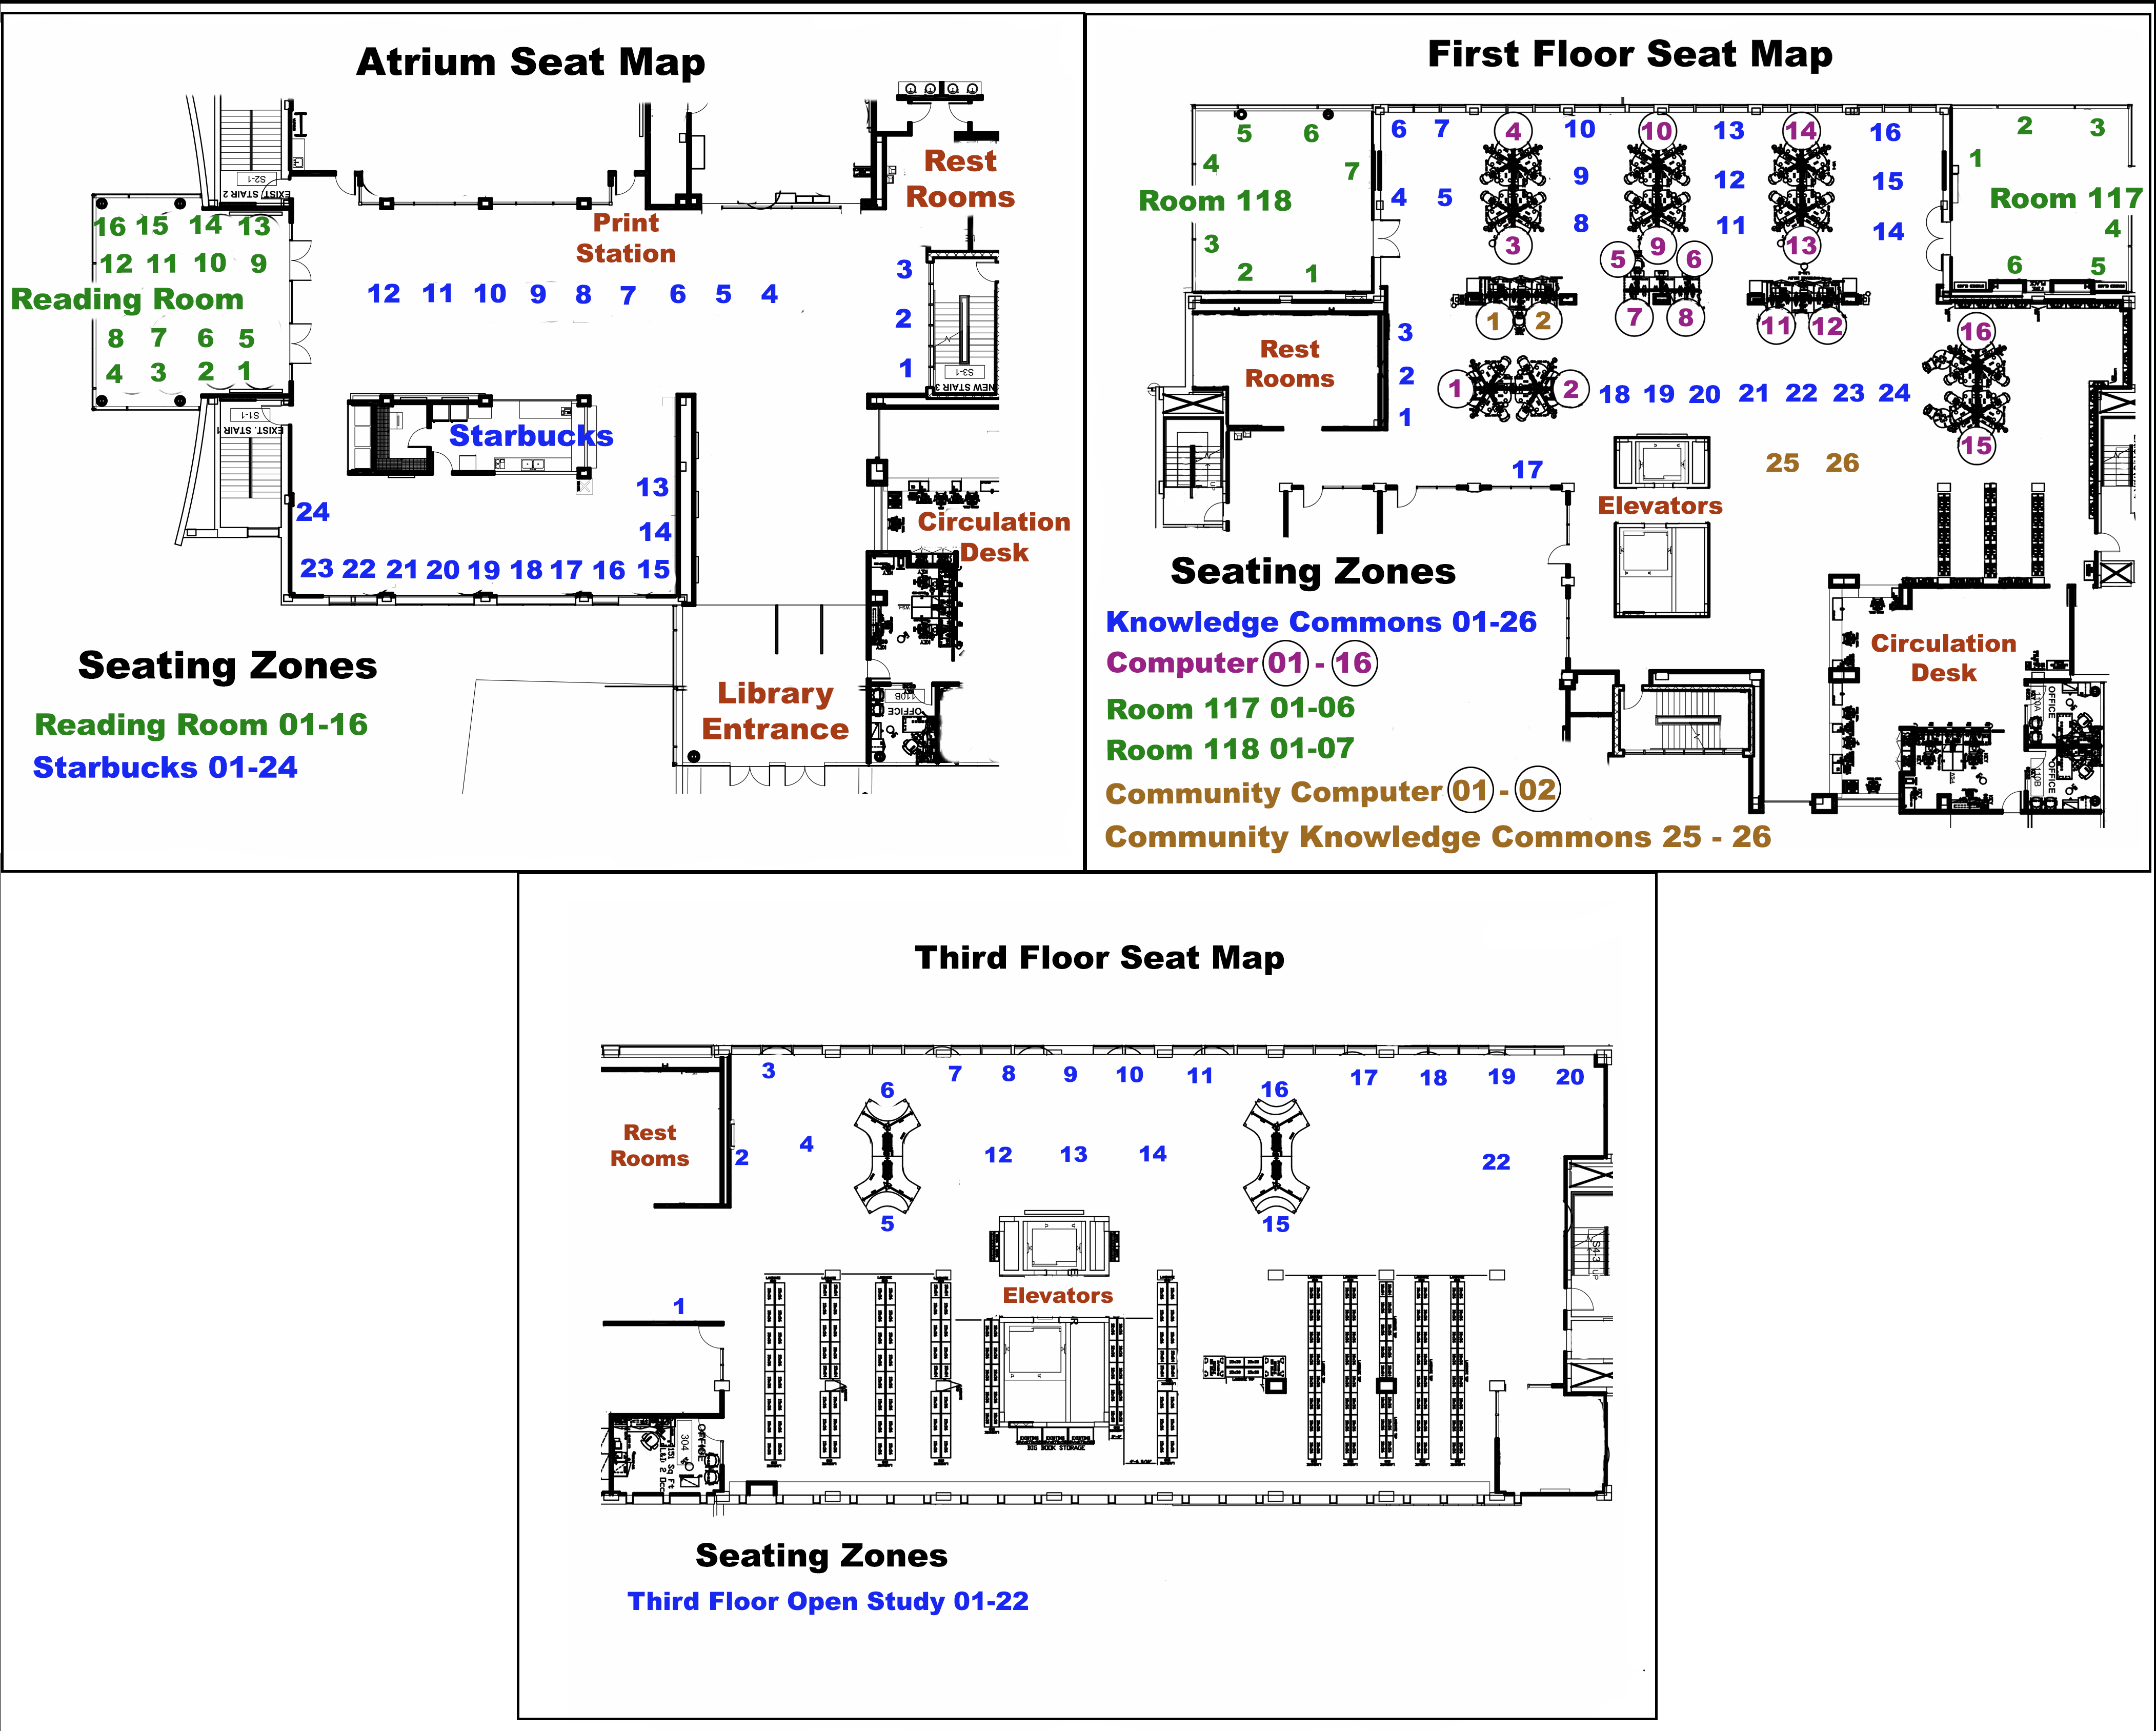 map that shows reservable seats locations on the first and third floors of the McNairy LIbrary including near Starbucks, the Reading Room, room 117, room 118, the Knowledge Commons and Computer area.